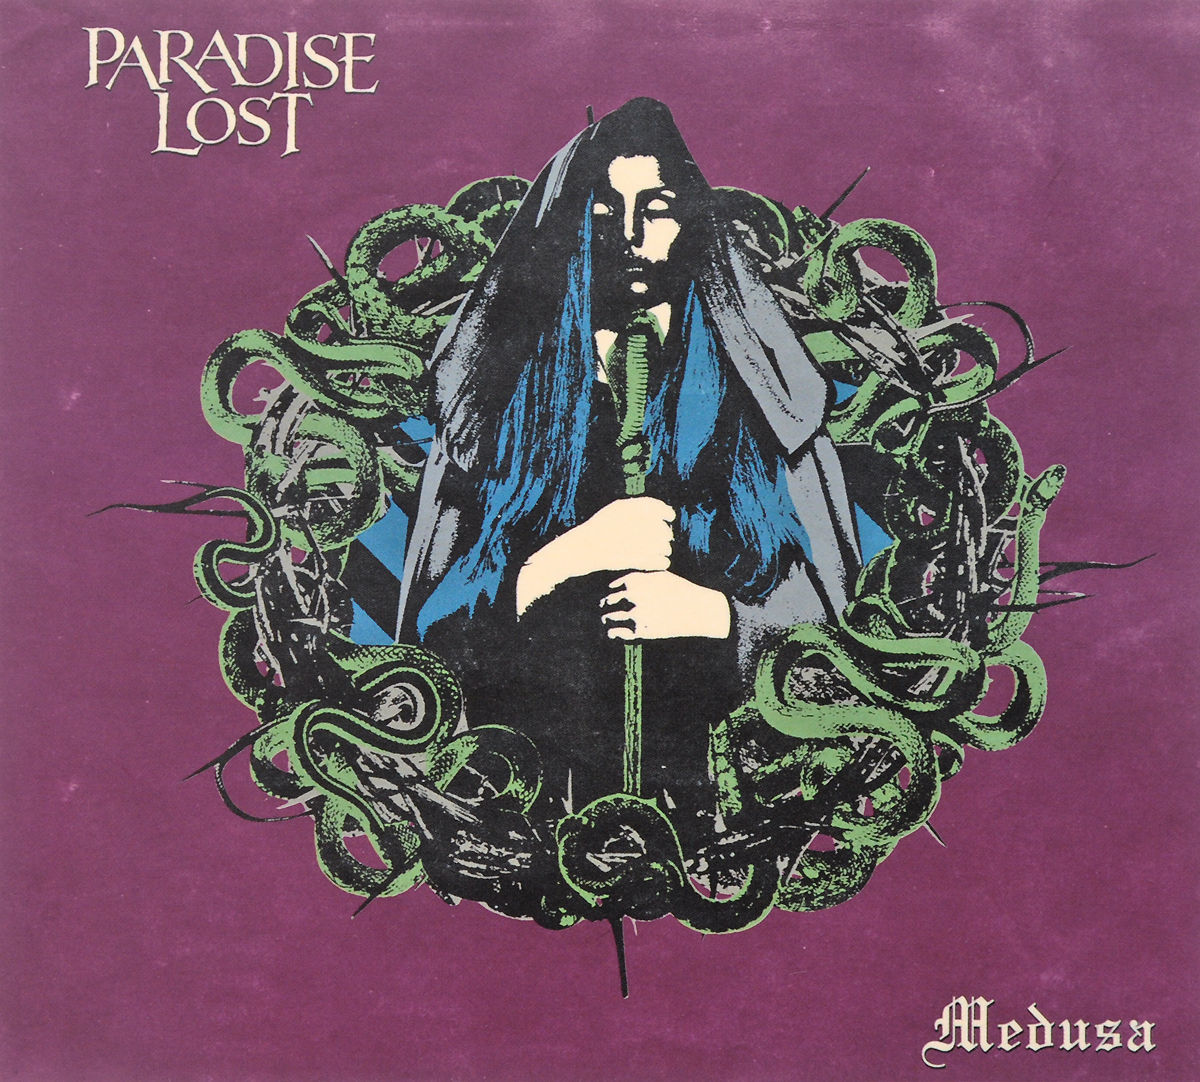 Paradise Lost Paradise Lost. Medusa paradise lost paradise lost icon